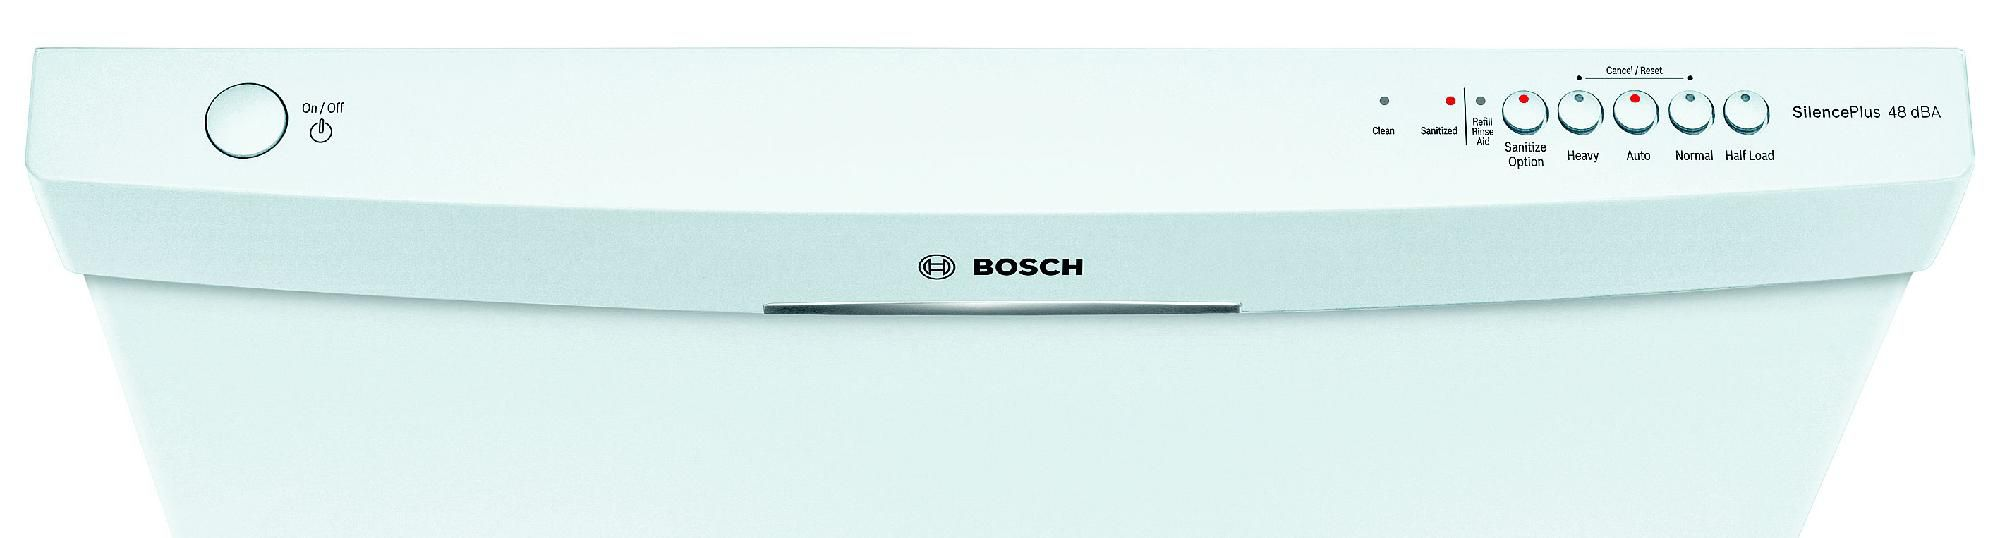 "Bosch 24"" Built-In Dishwasher - White"